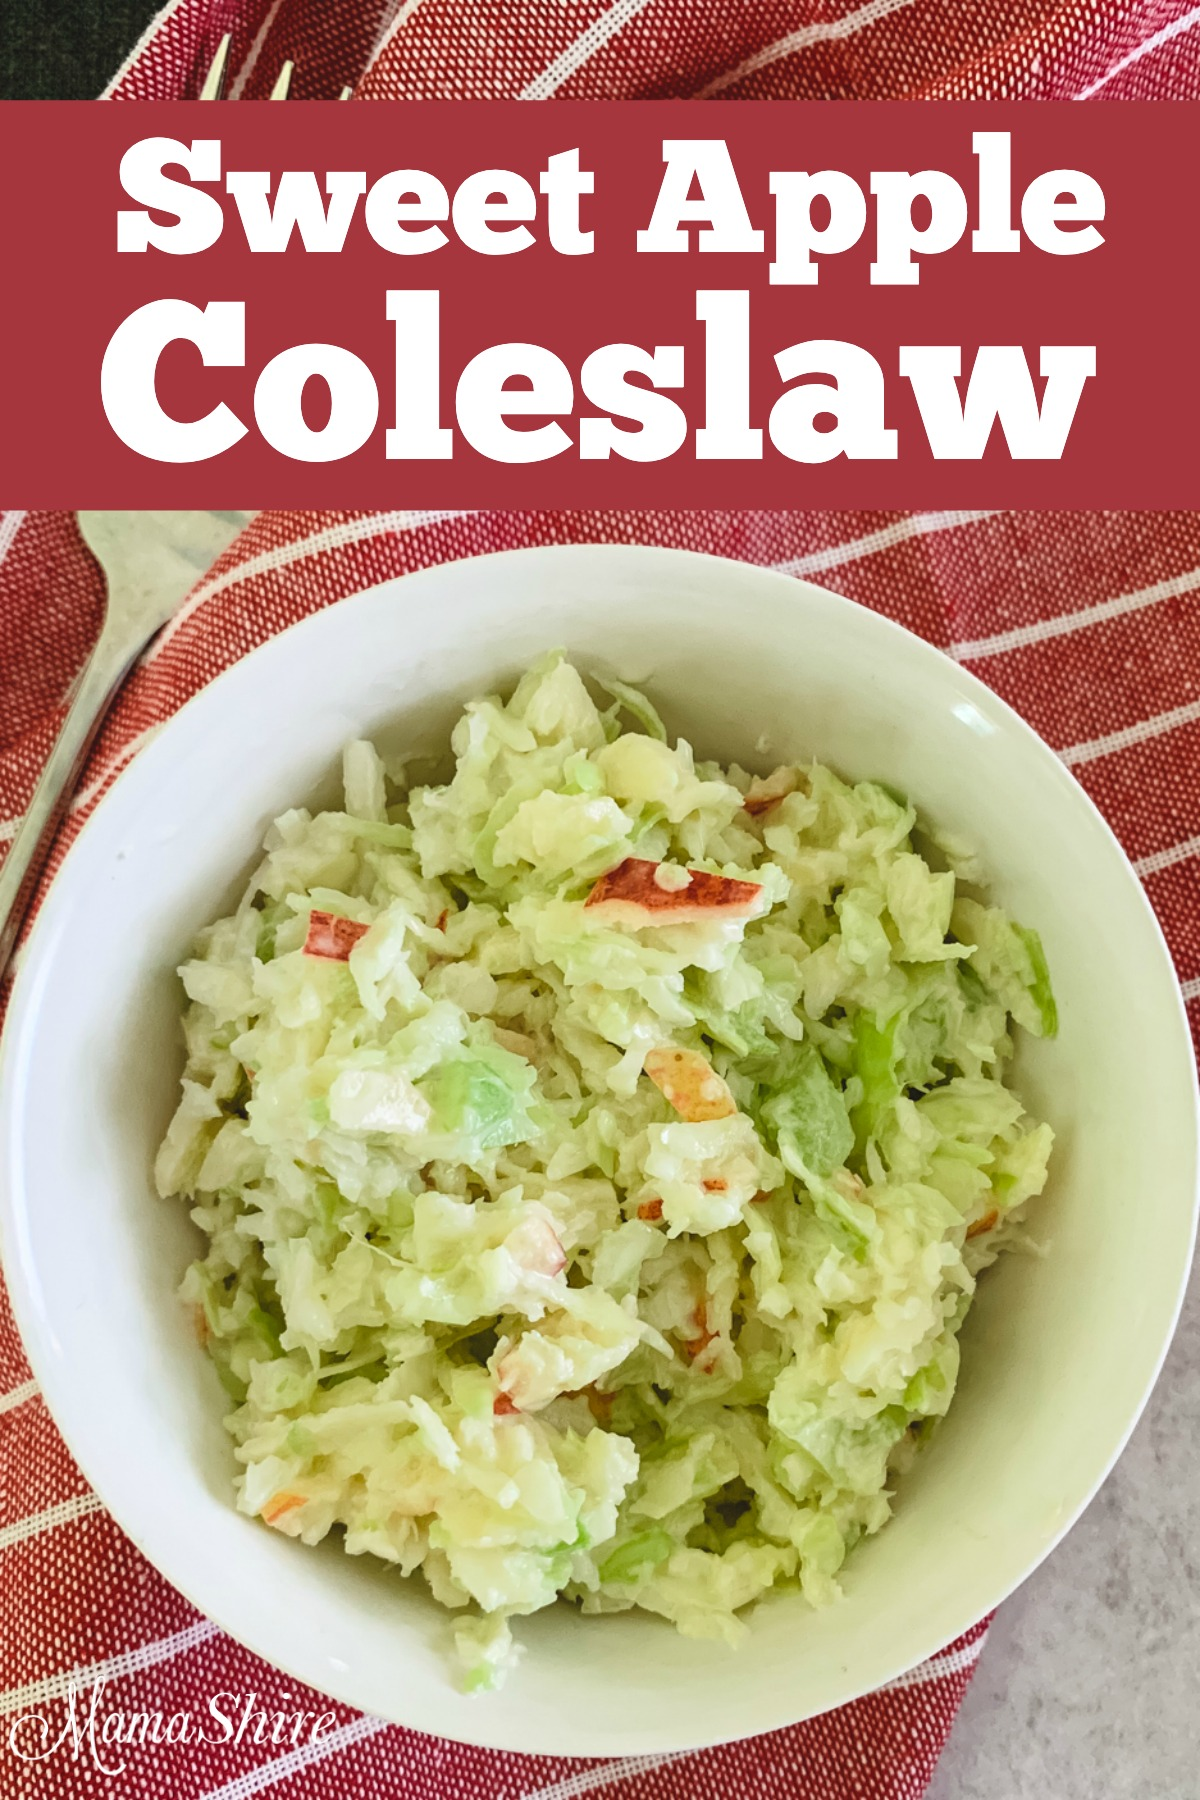 Sweet and tangy coleslaw in a single serve bowl.